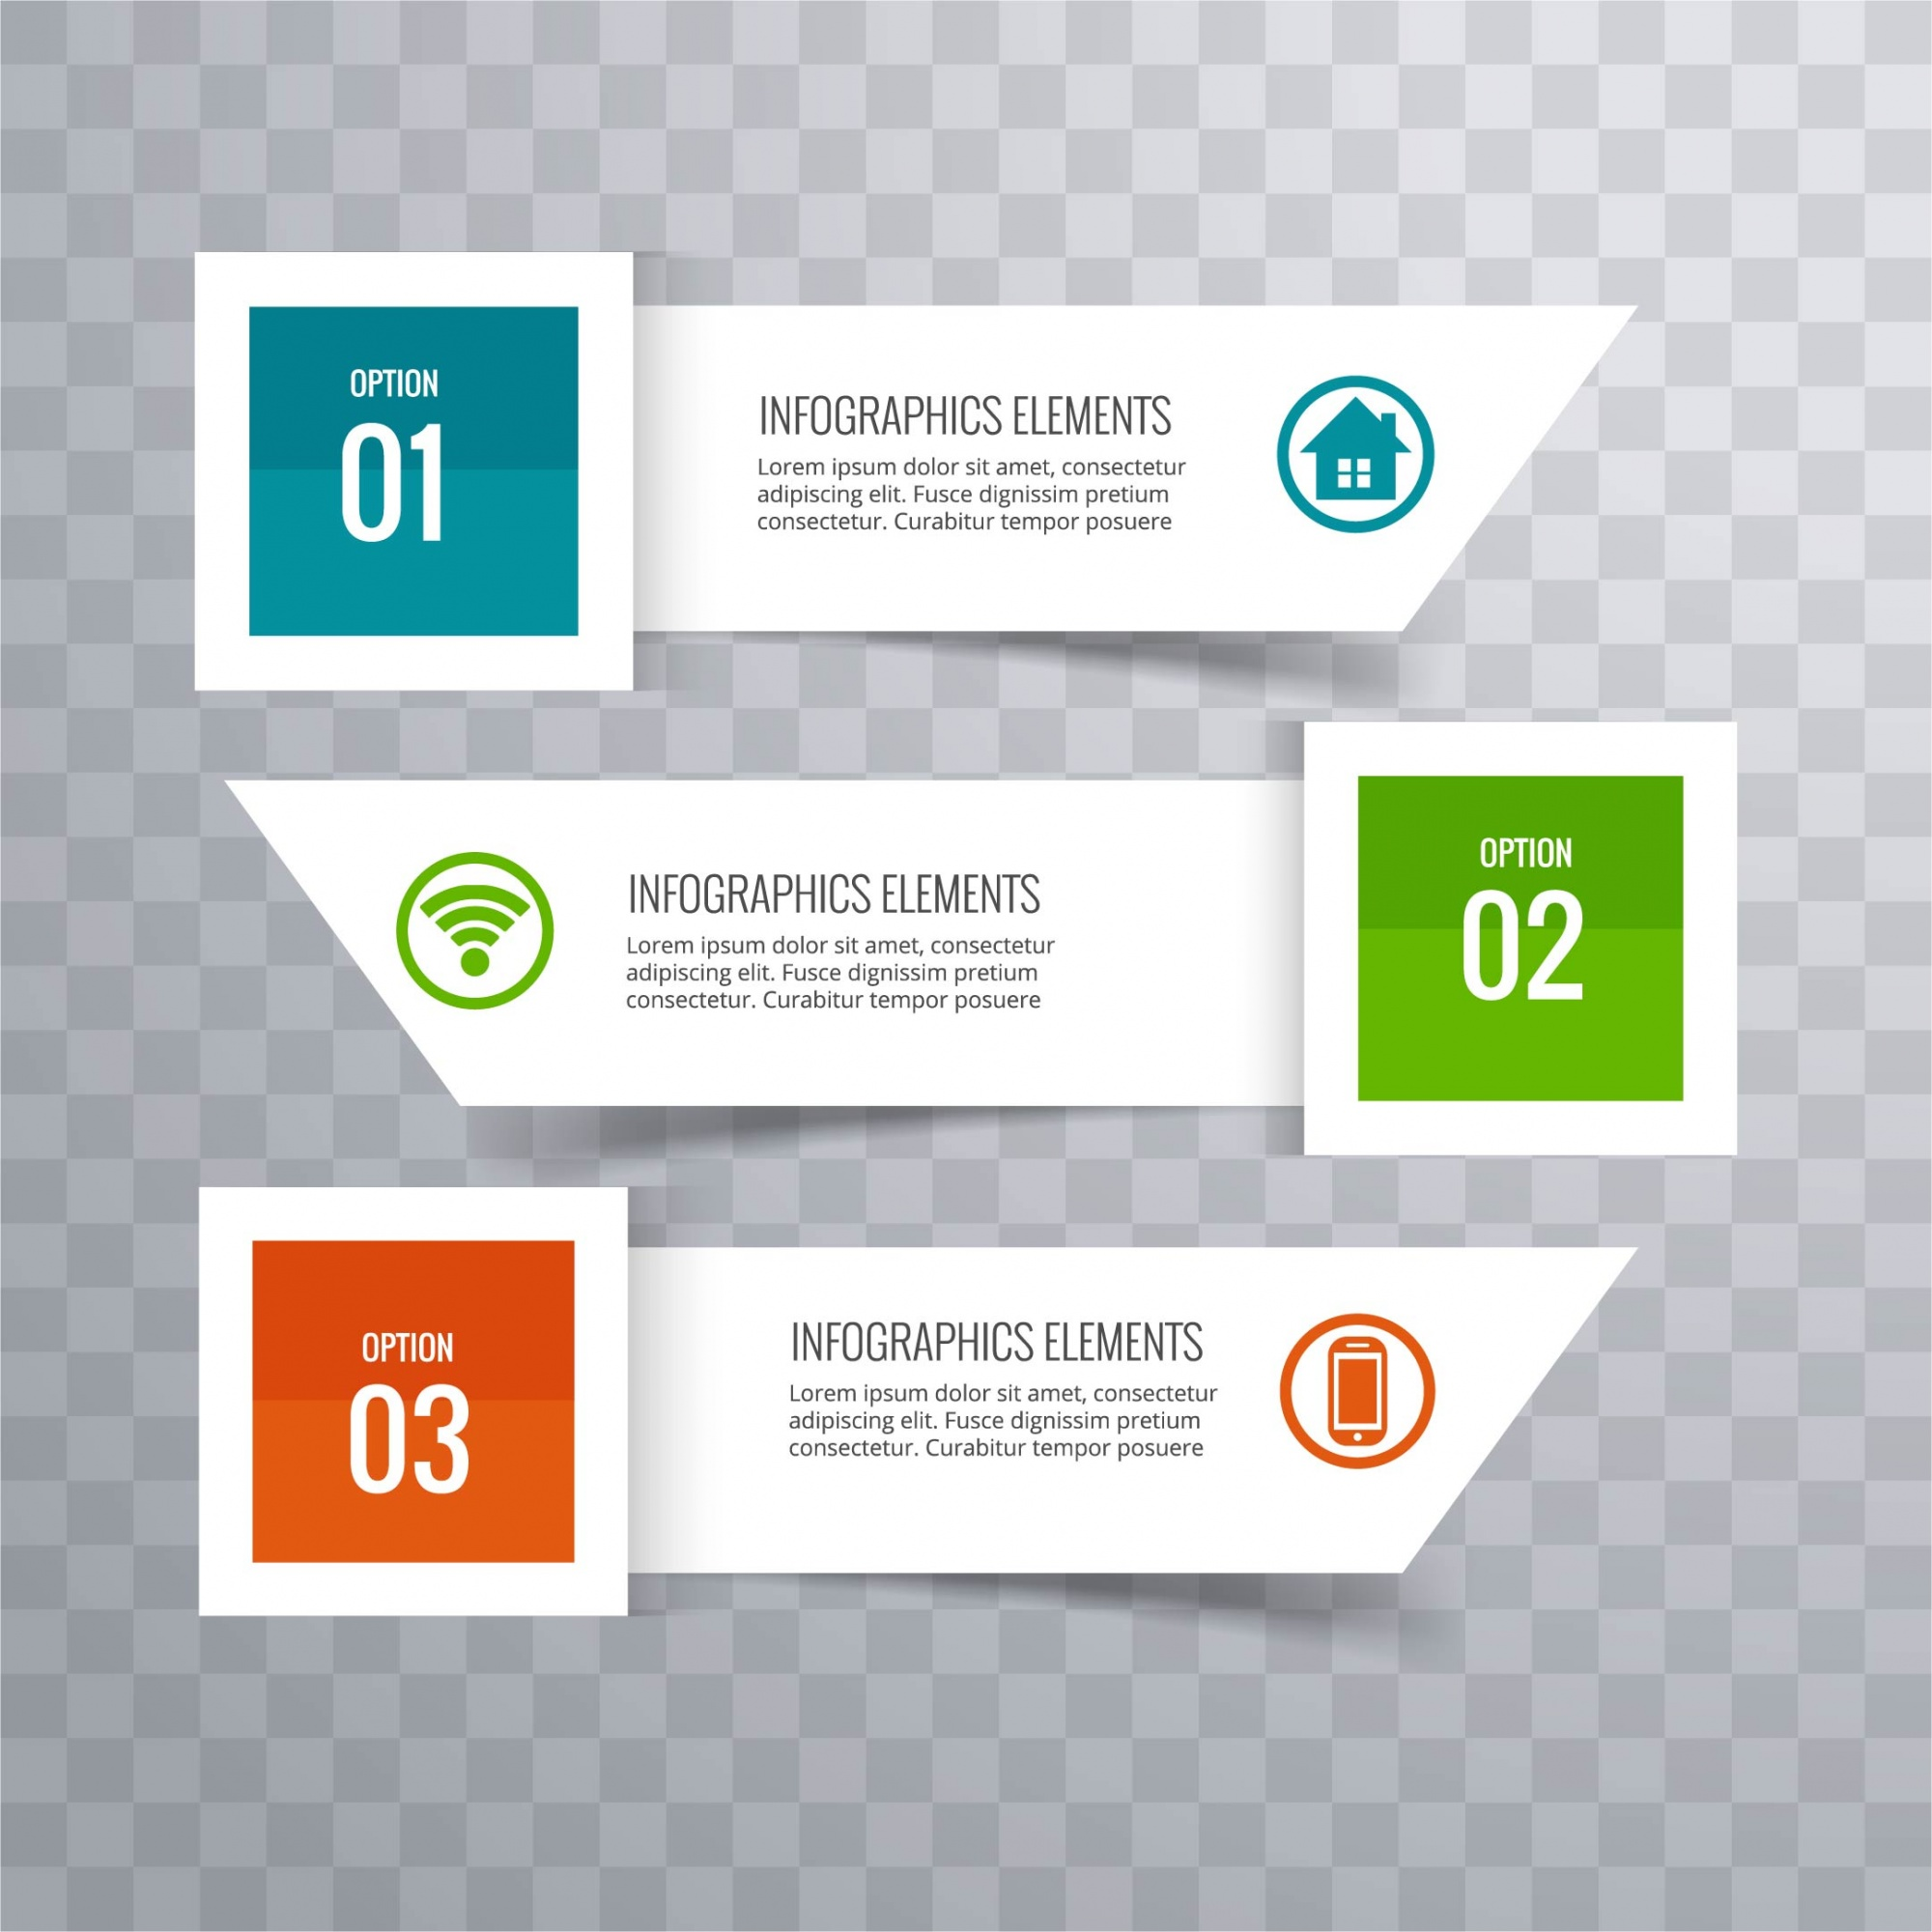 Modern infographic background